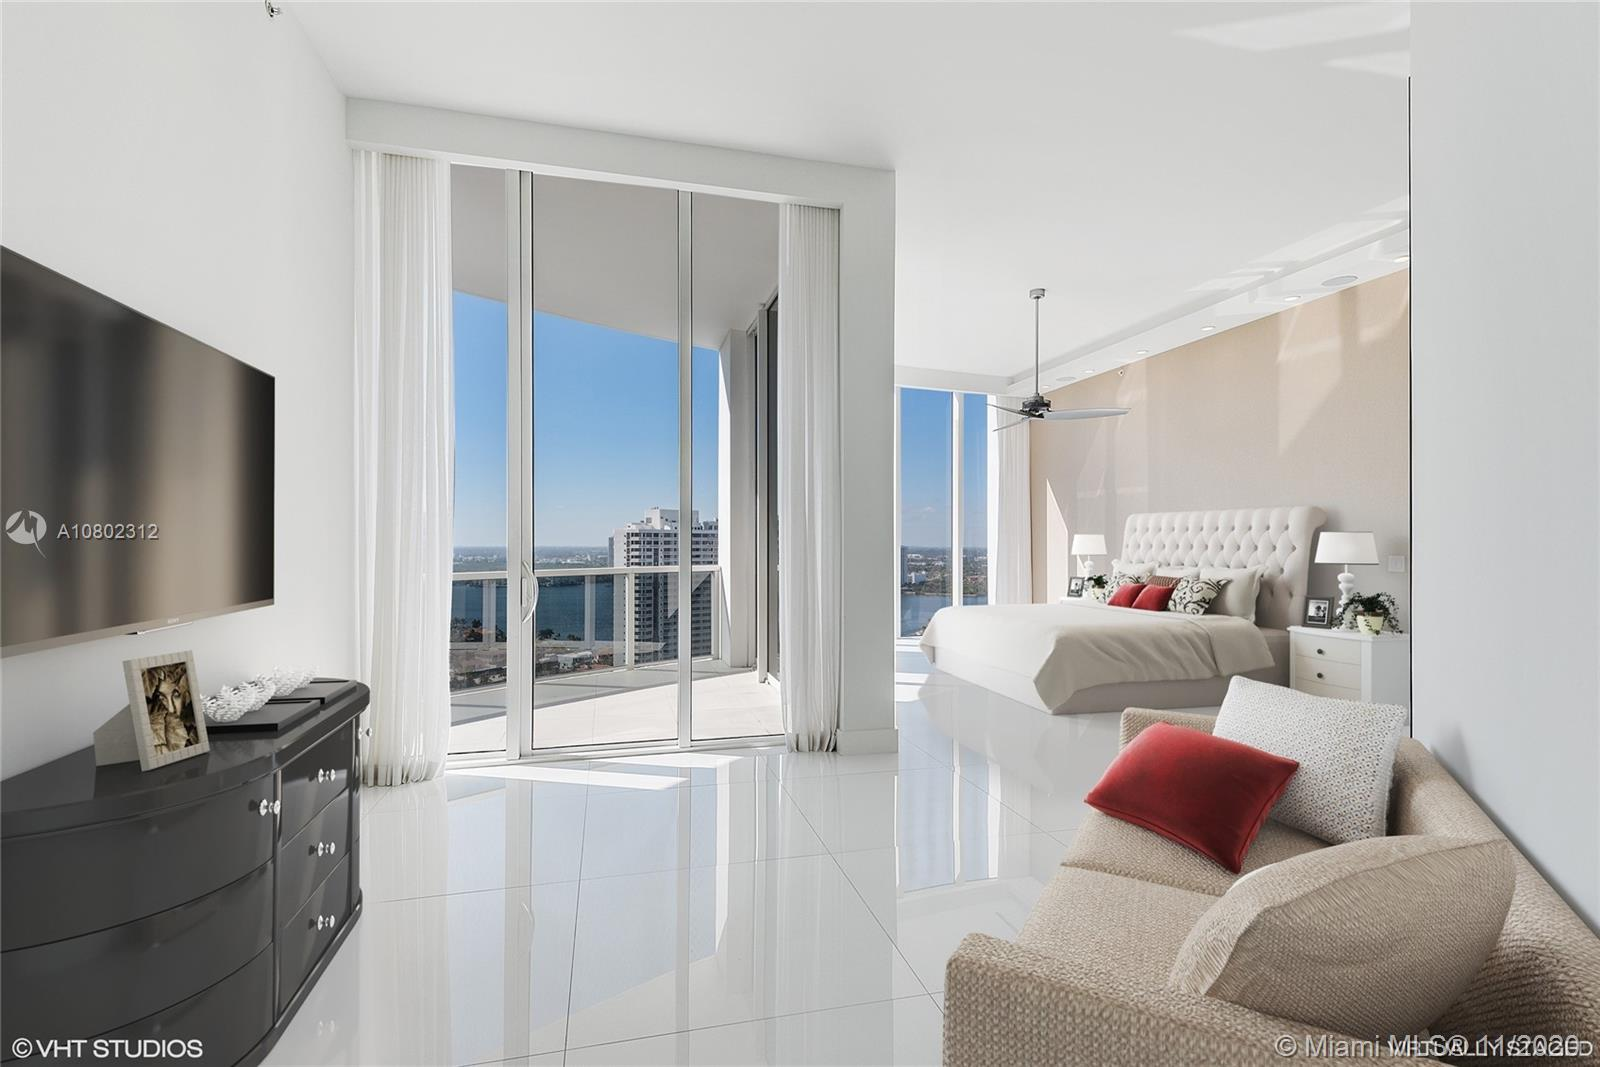 REDUCED!  Open the door to the most spectacular views Miami has to offer.  12' floor to ceiling impact glass and an open wraparound balcony floods the unit with natural light.  The large master bedroom has dual master baths, walk-in custom closets, electric blinds and a sitting area.  The over-the-top chef's kitchen has Miele appliances, induction cooktop, coffee/espresso maker, dual wall ovens & wine cooler.  Sonos surround sound in all rooms, plus custom lighting.  Private entrance to Office, Den, Nanny or Maid's room, your choice. Unit comes with two assigned parking spaces and two storage units.  Williams Island offers full concierge service, valet, fitness, spa, salon, 16 tennis courts, pool, marina, children's park, dog park and 3 restaurants. $10,800 CREDIT TO BUYER FOR ANNUAL FEES!